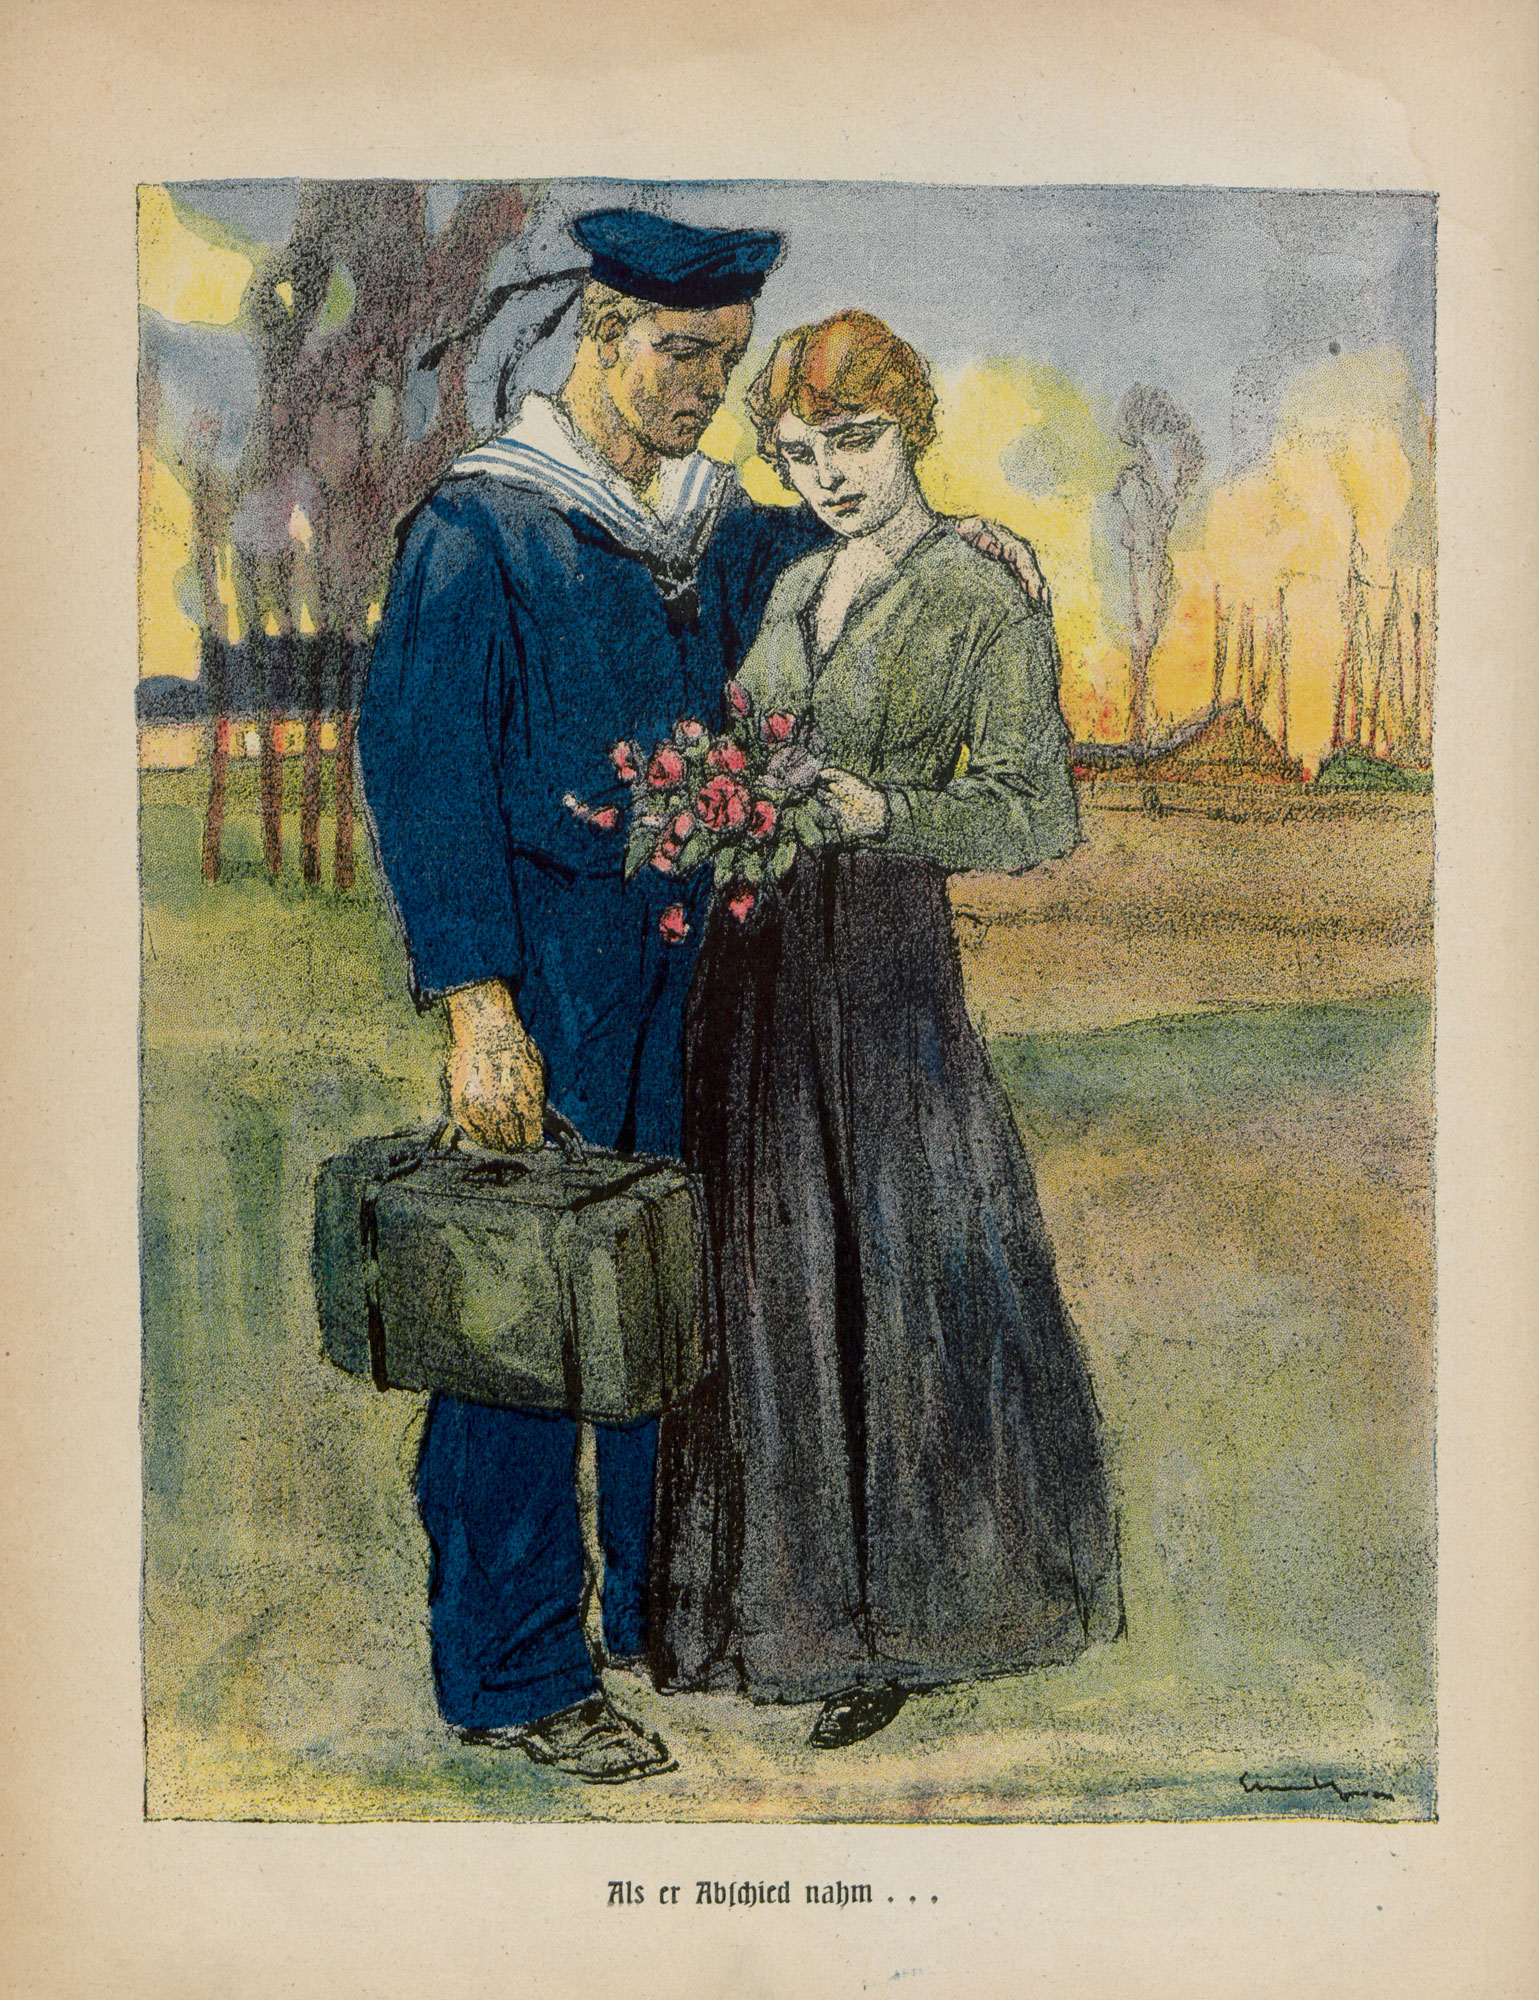 Image from 'Our blue-jackets', a German propaganda leaflet, 1916.